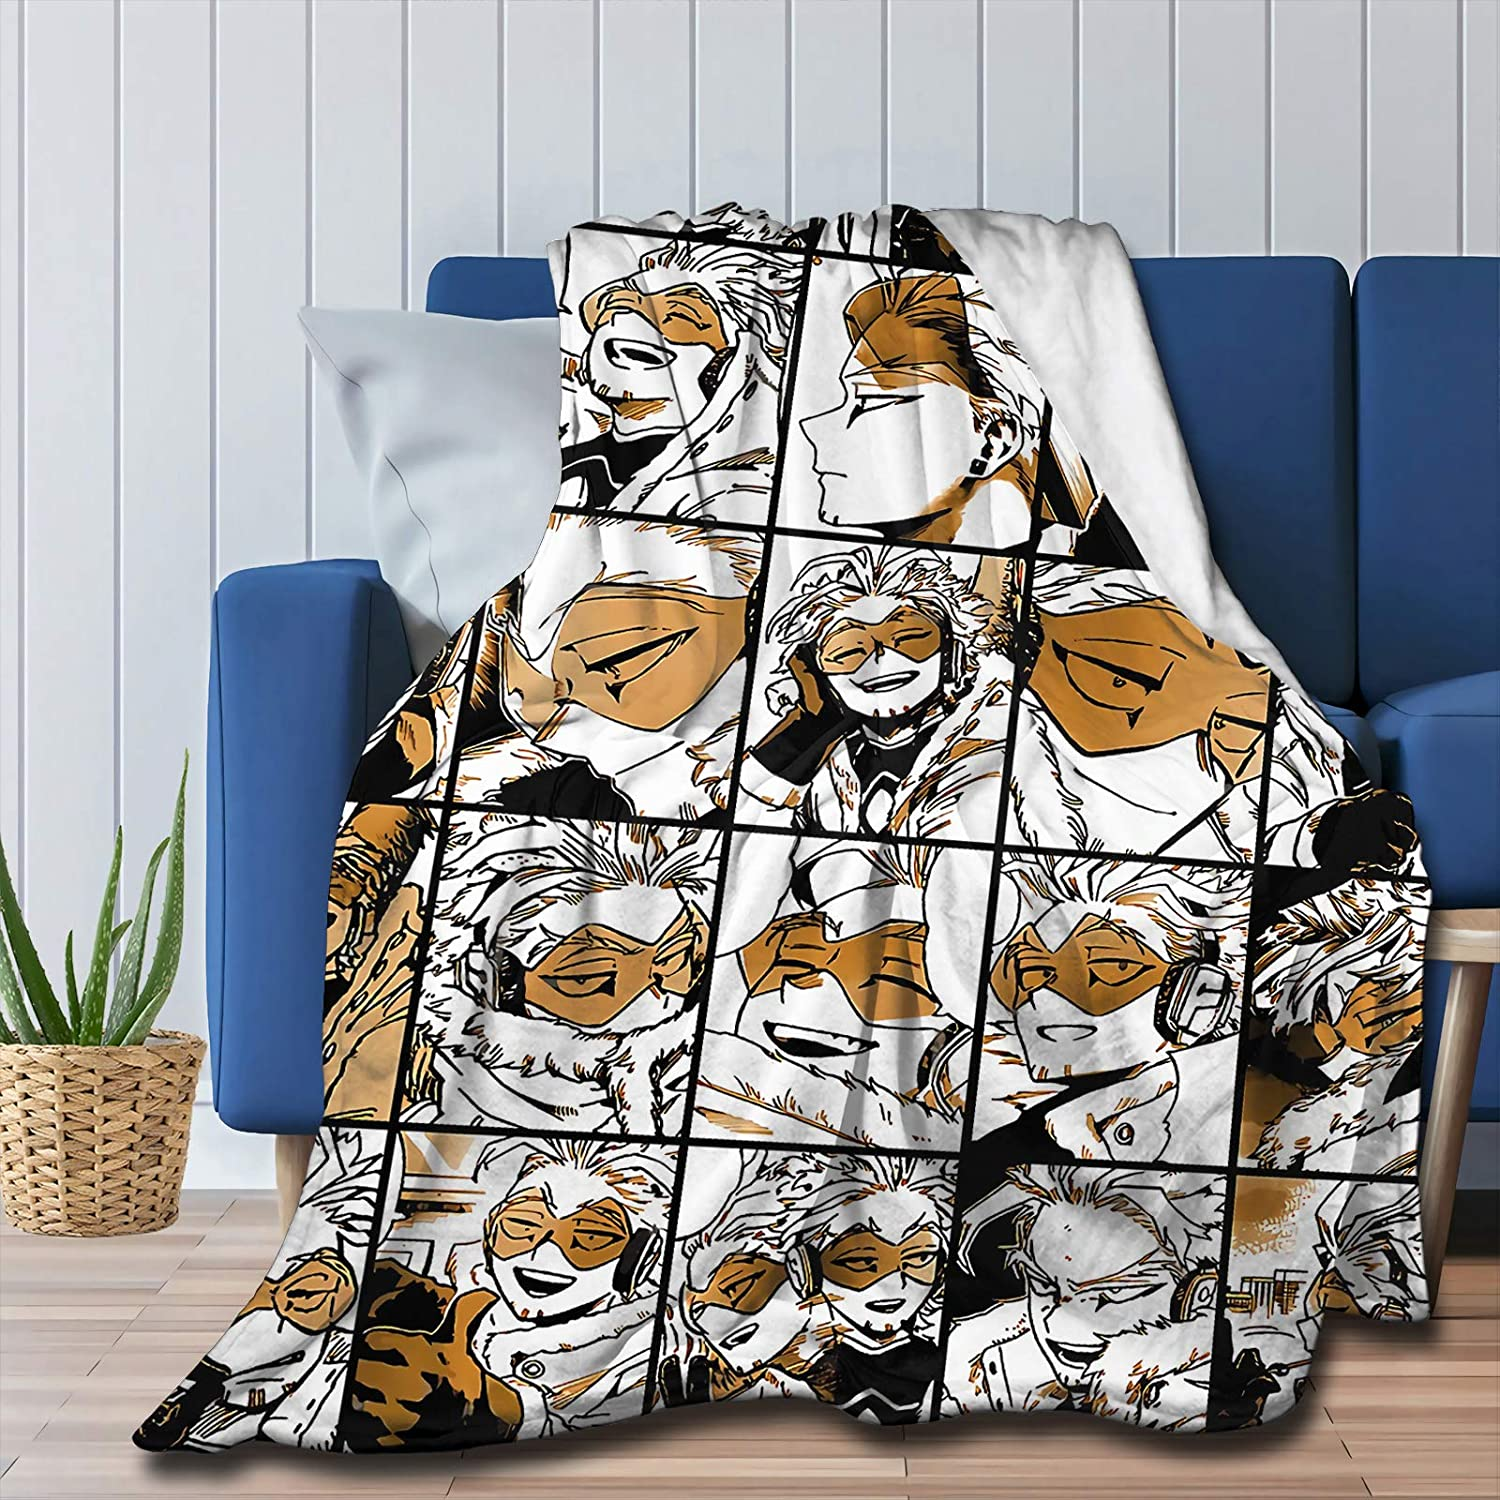 anime-gifts-blanket